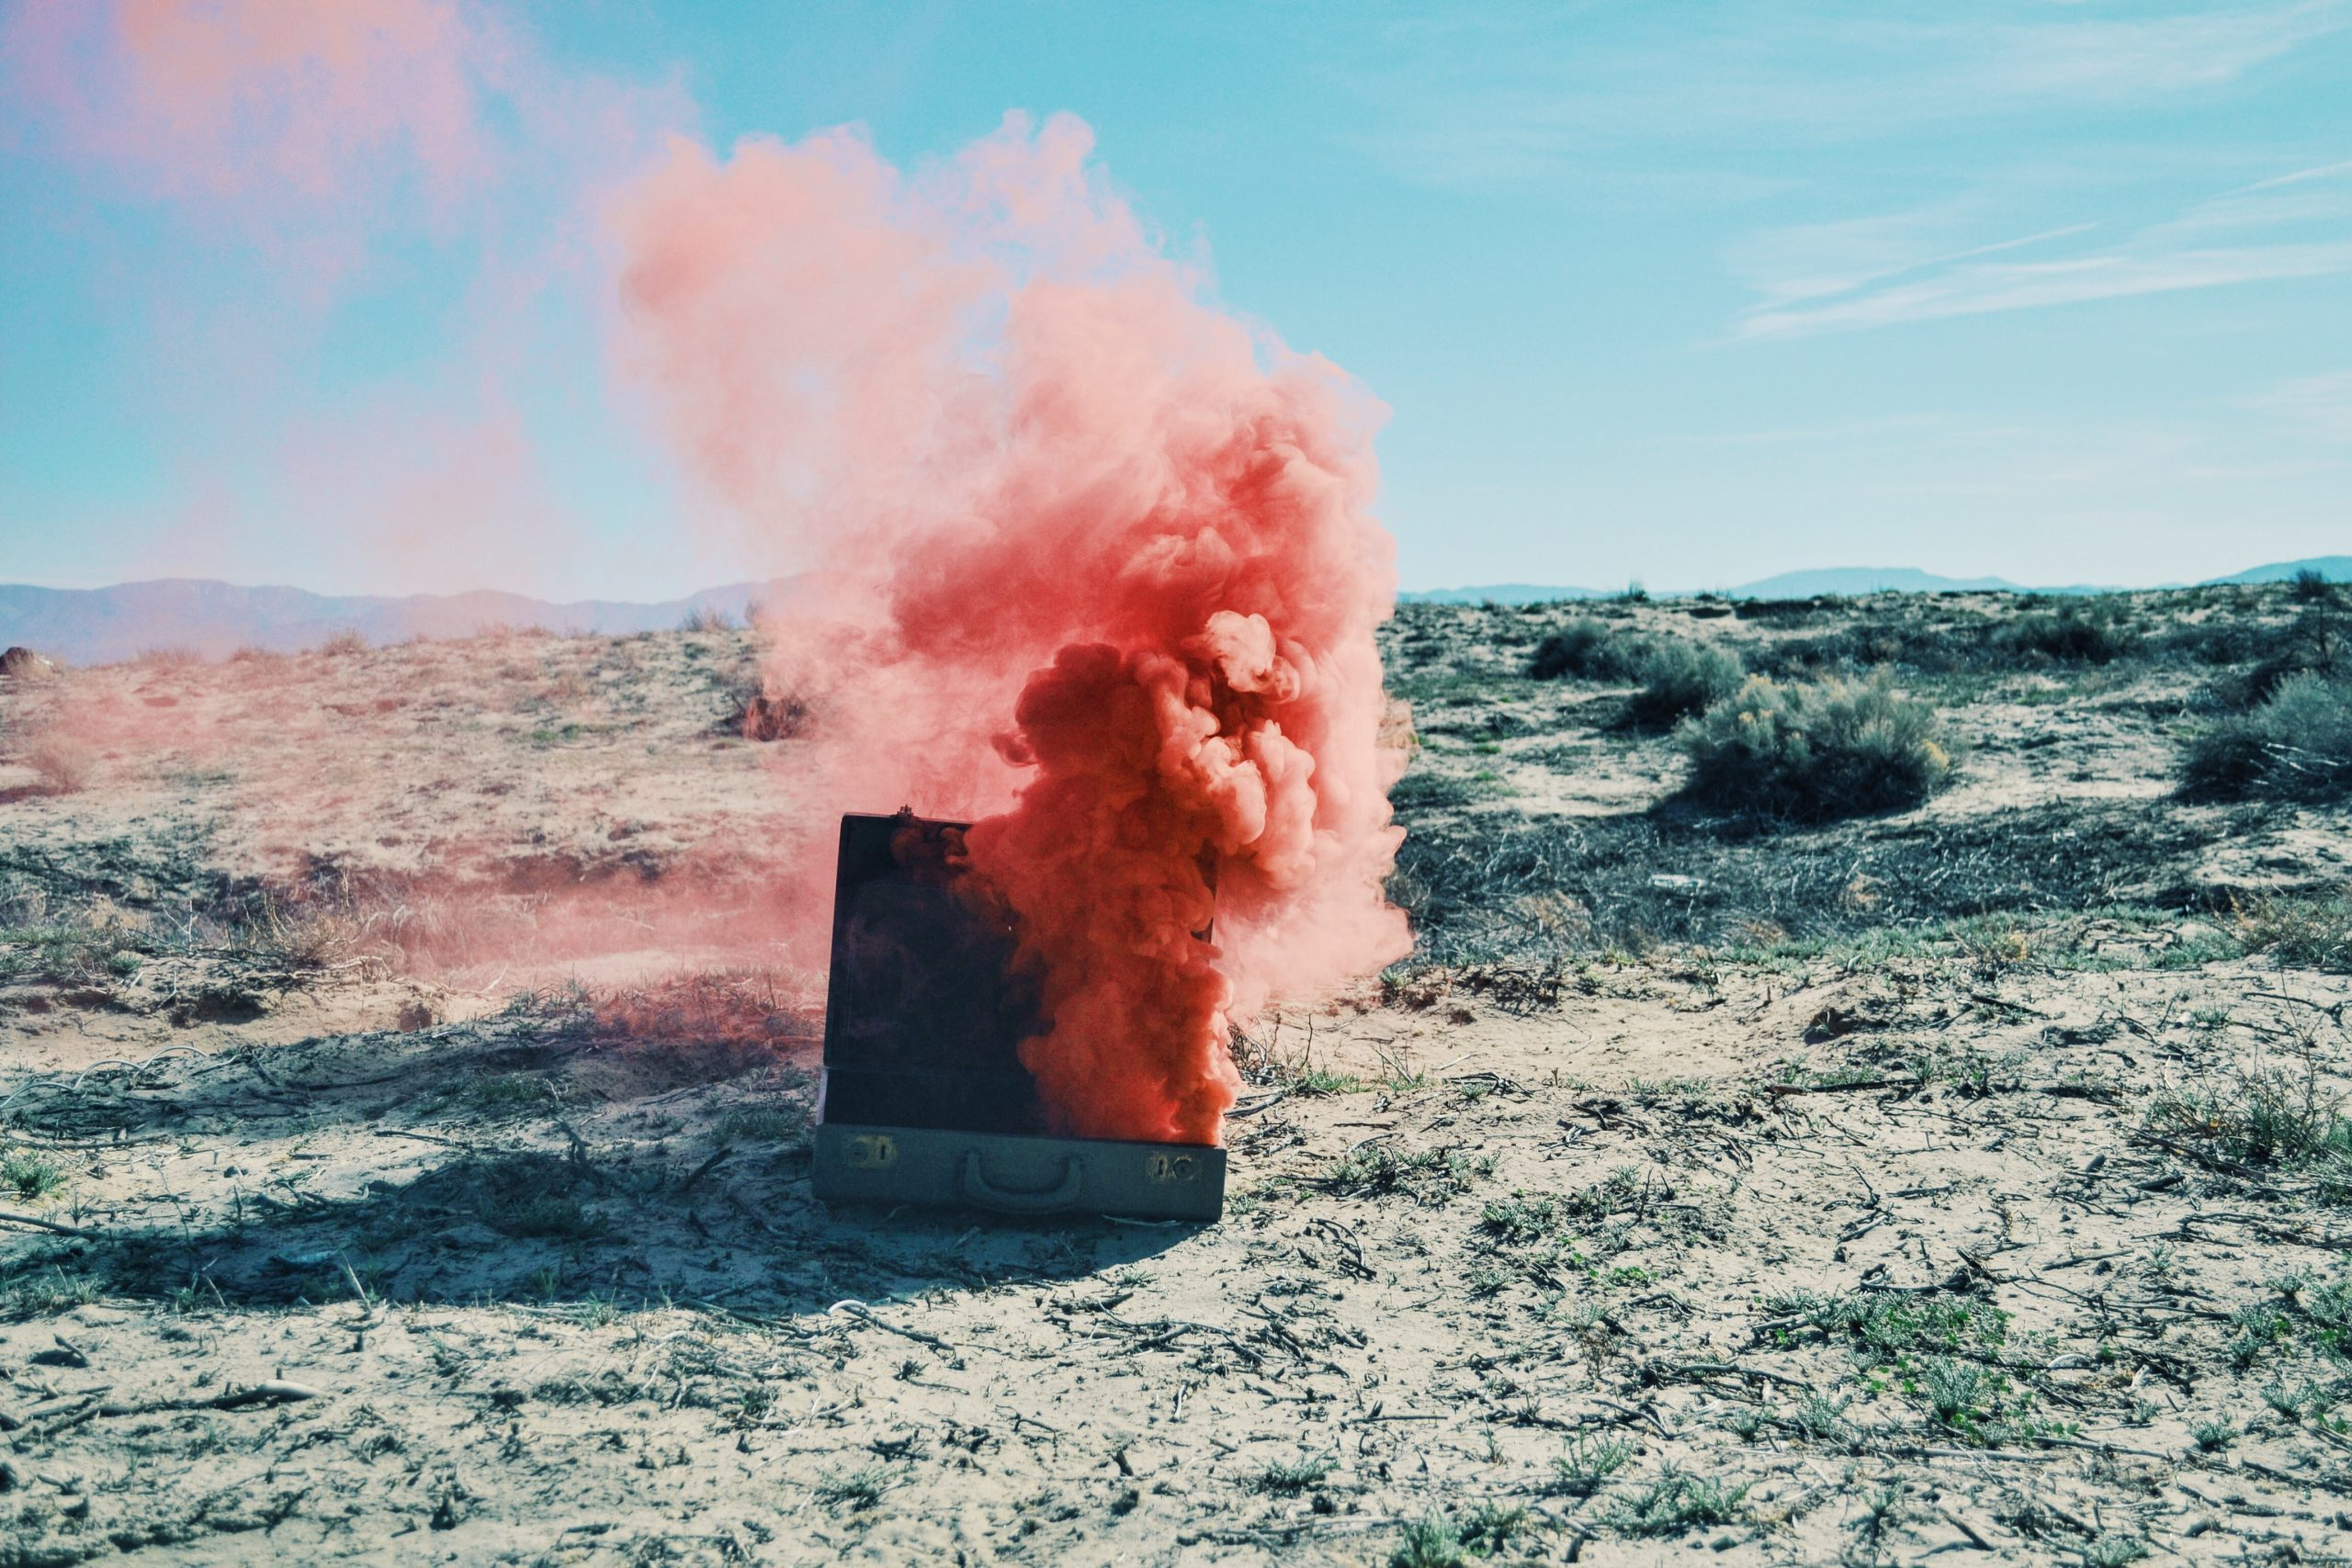 briefcase on the sand with red smoke